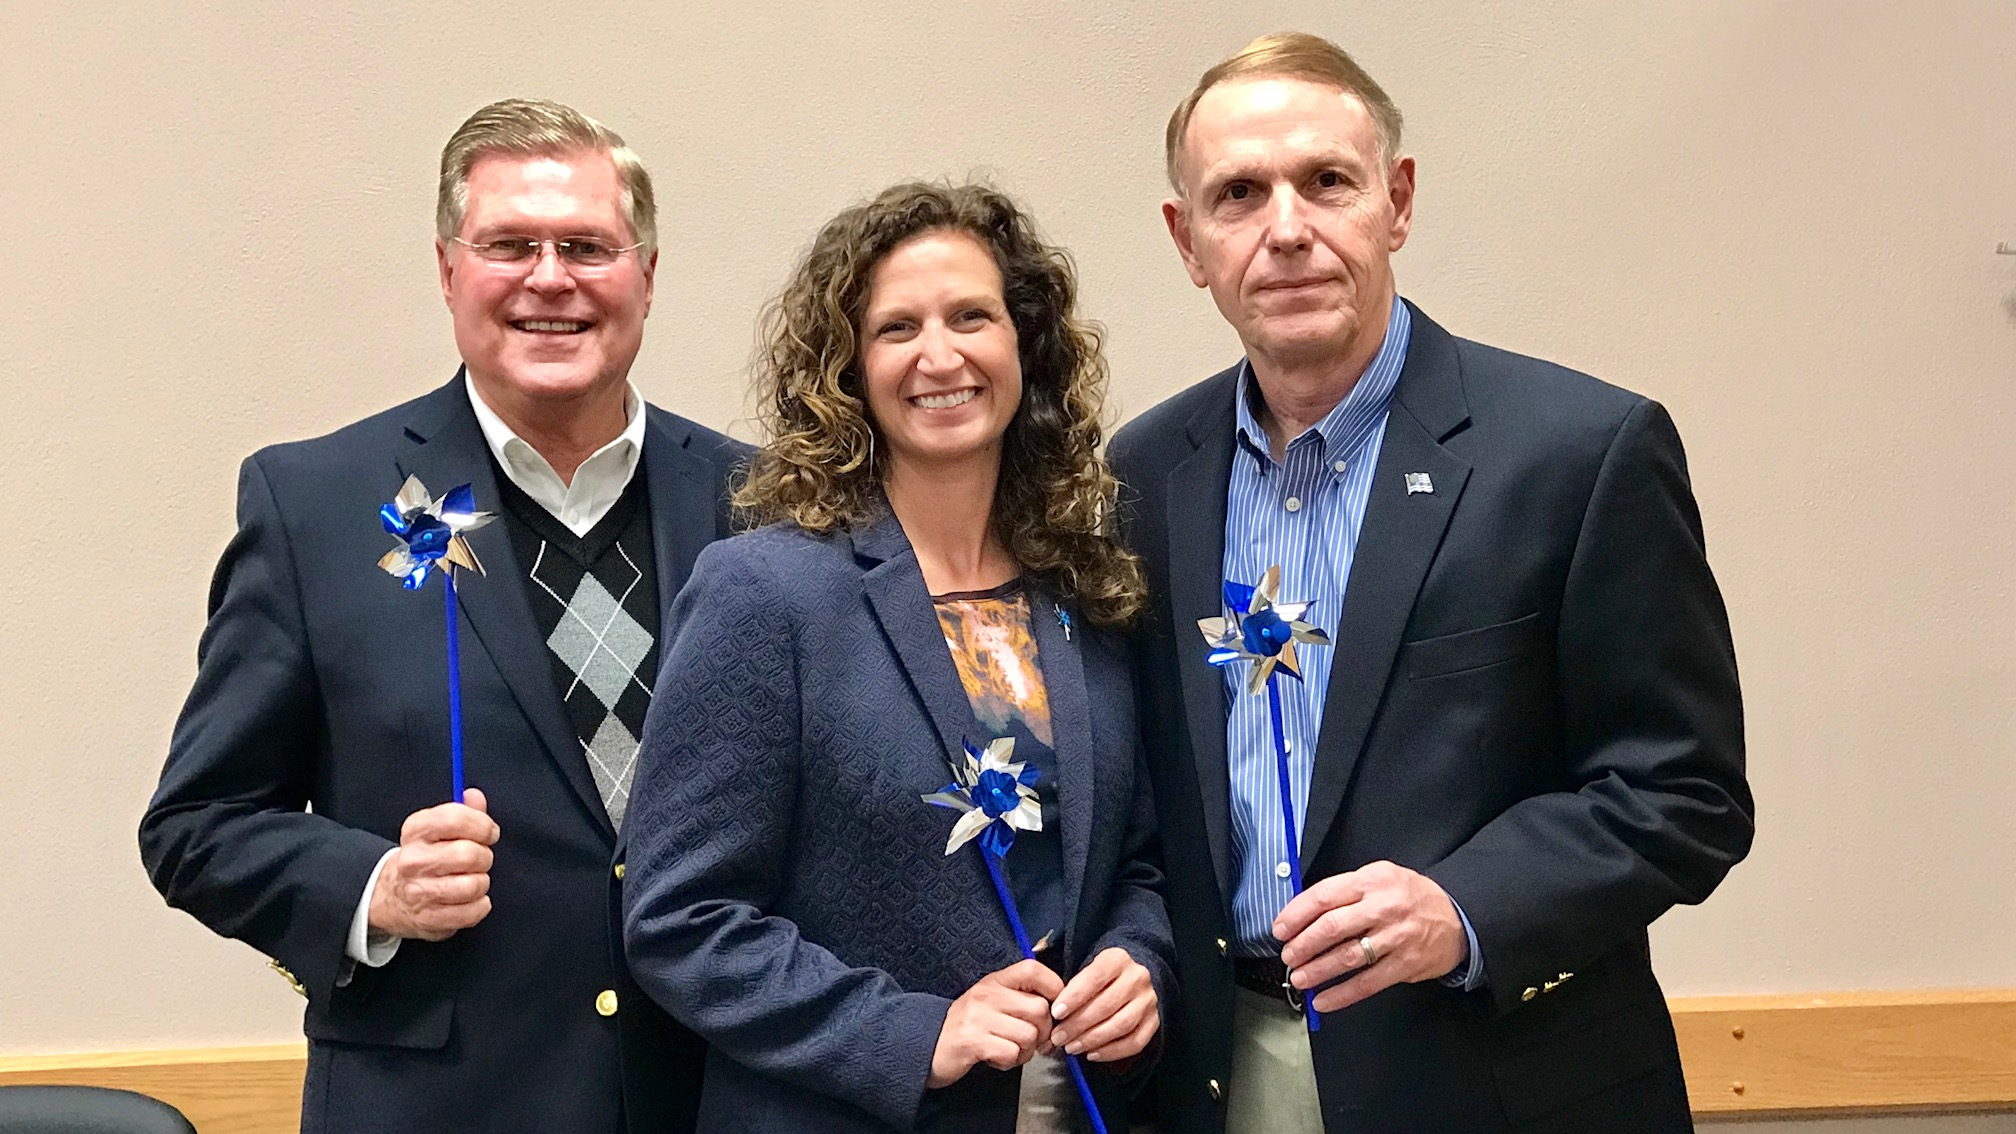 Clark County Commissioners Lowell McGlothin, Melanie Flax Wilt and Rick Lohnes hold pinwheels in support of Child Abuse Awareness Month.